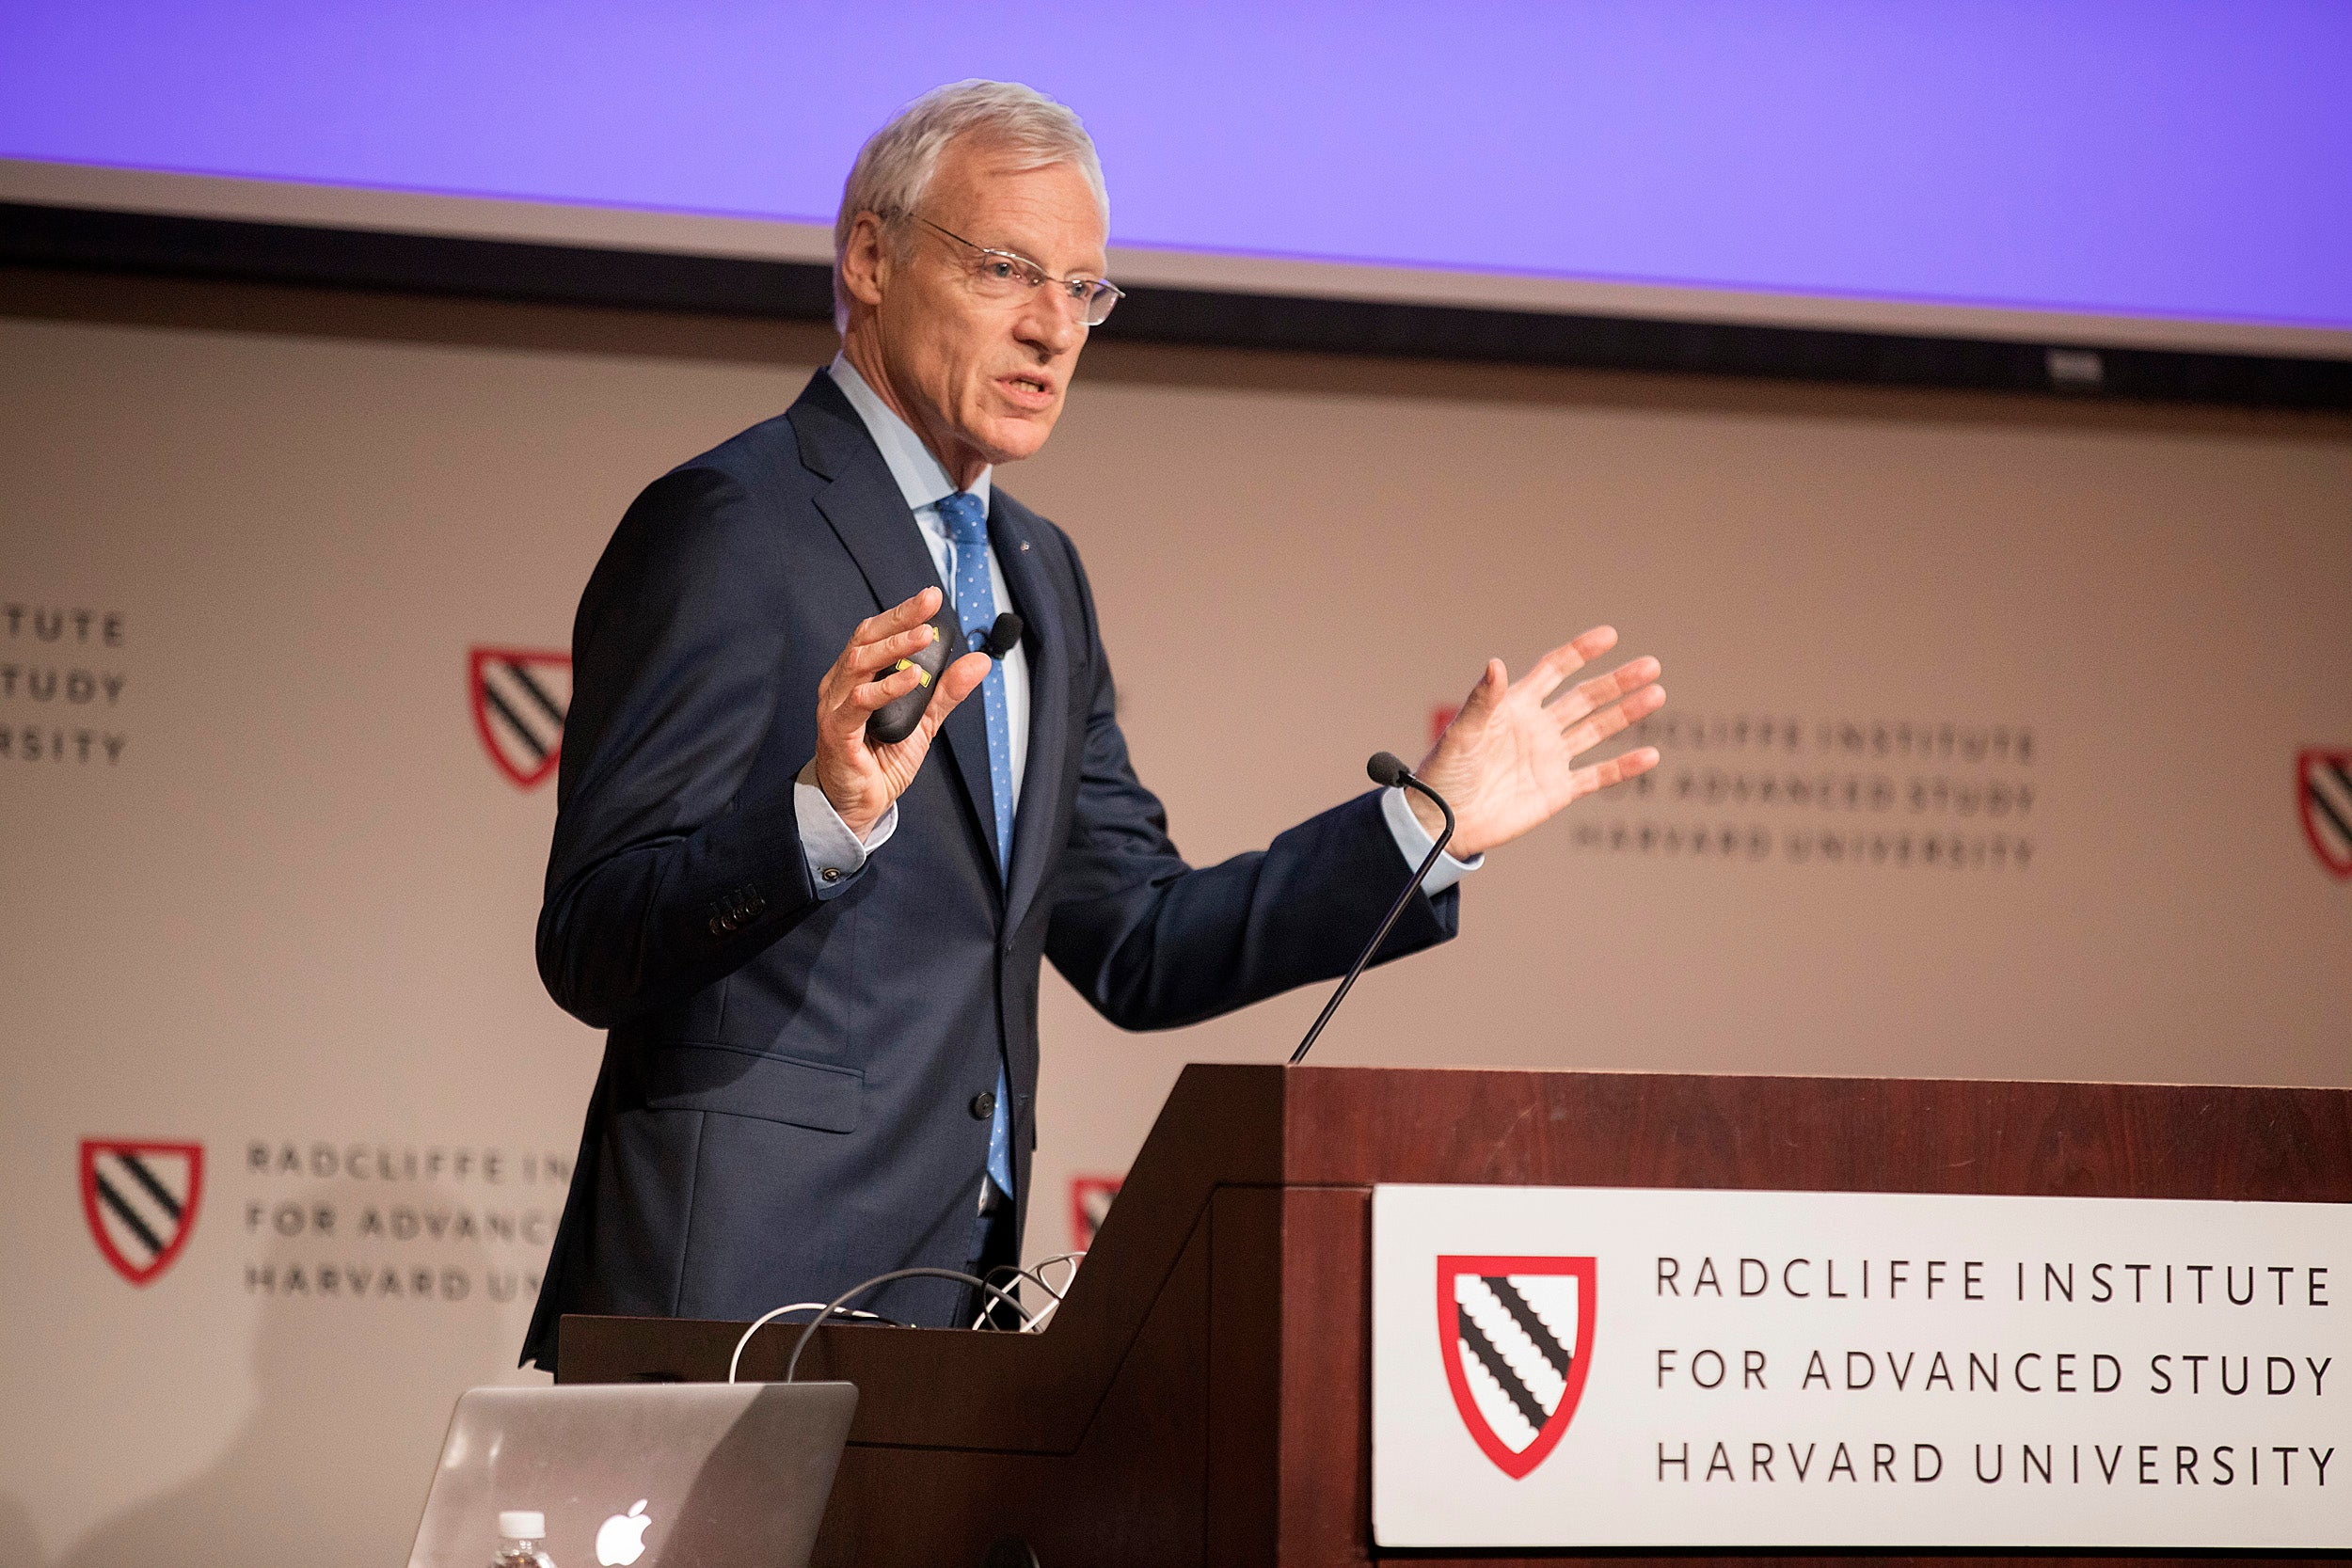 At a Radcliffe talk about the dementia epidemic, Professor Albert Hofman said most Alzheimer's cases are likely related to non-genetic causes, which would explain the decreased incidence in recent years.